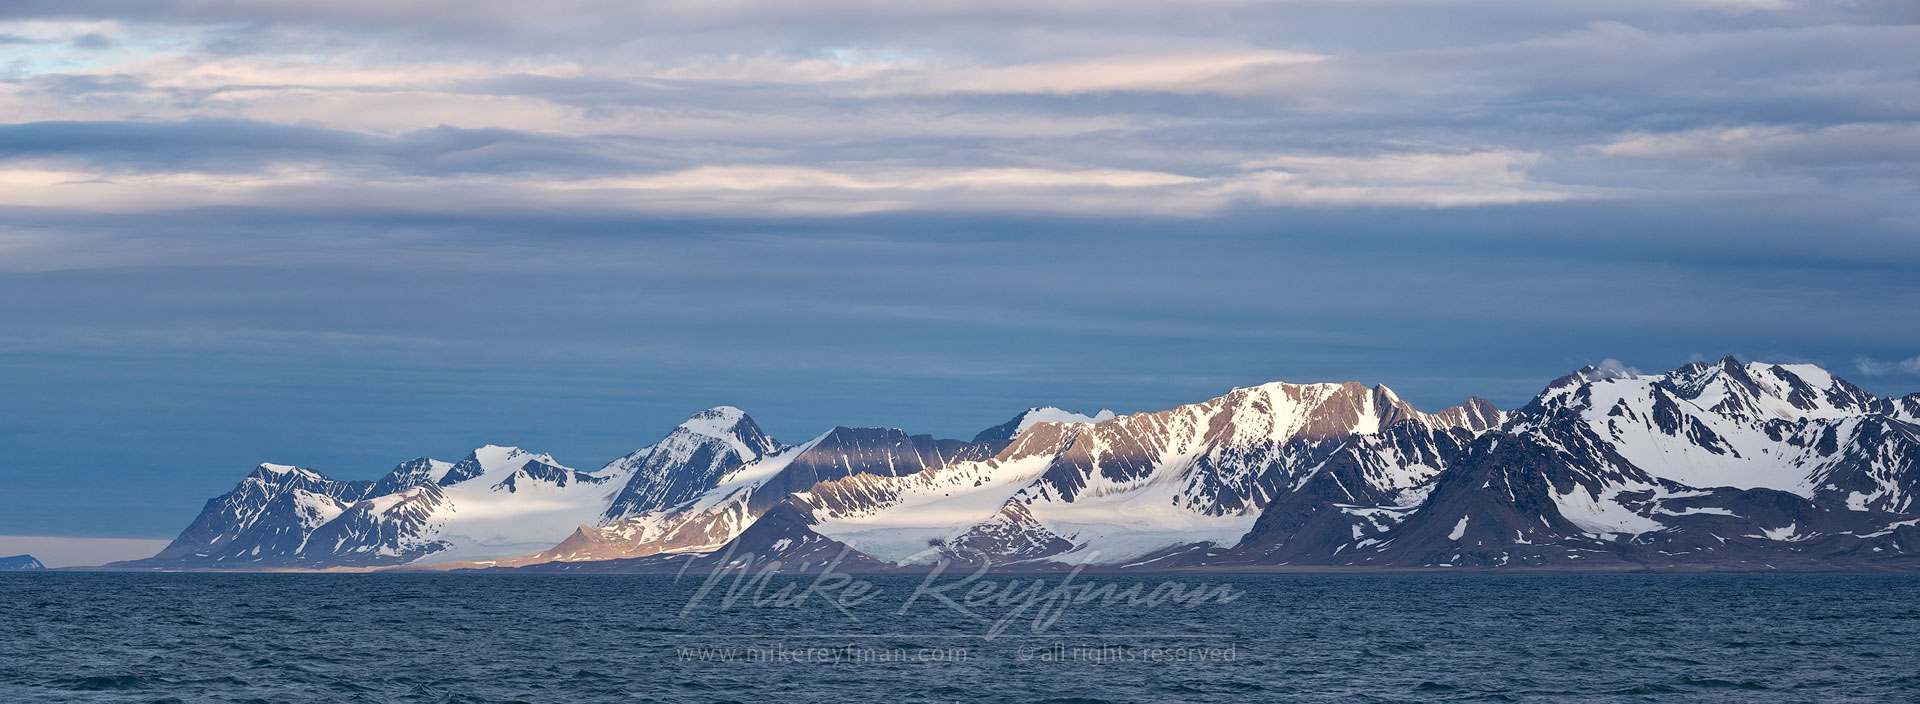 Svalbard Mountains at Forlandsundet, Spitsbergen, Svalbard, Norway. - Arctic-Landscape-Svalbard-Spitsbergen-Norway - Mike Reyfman Photography